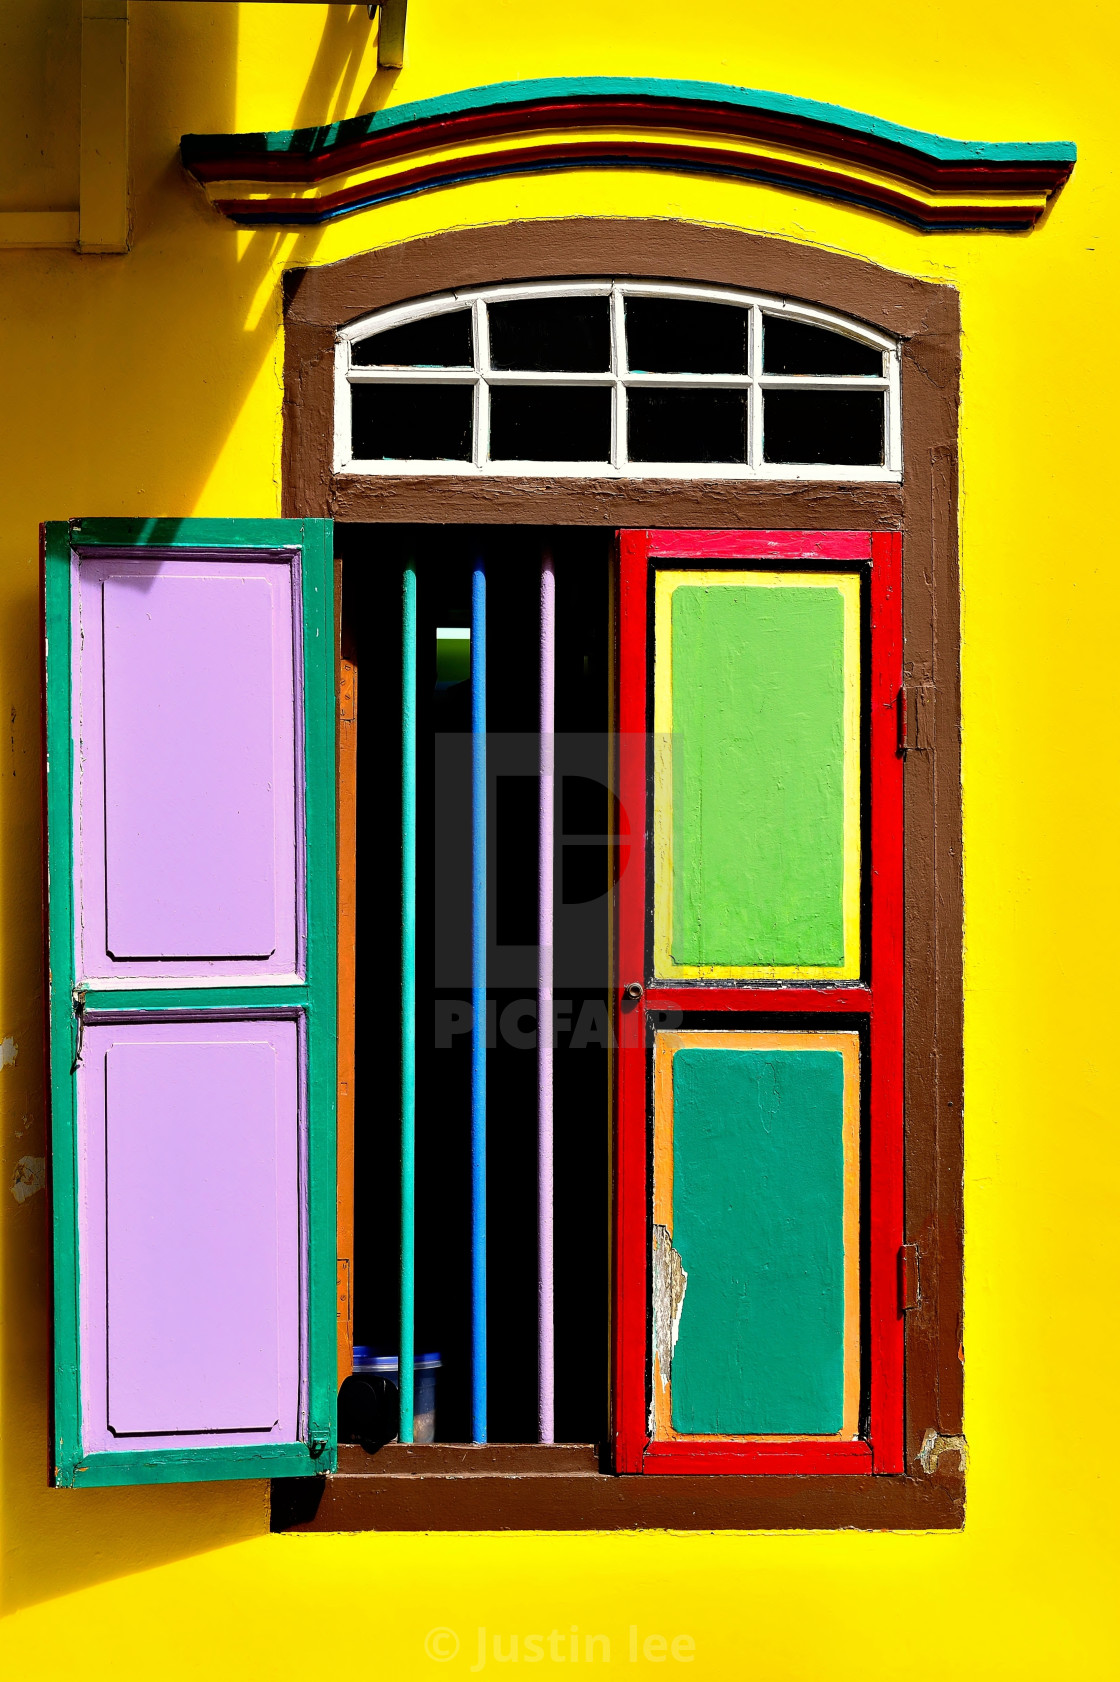 """Window with colourful shutters"" stock image"